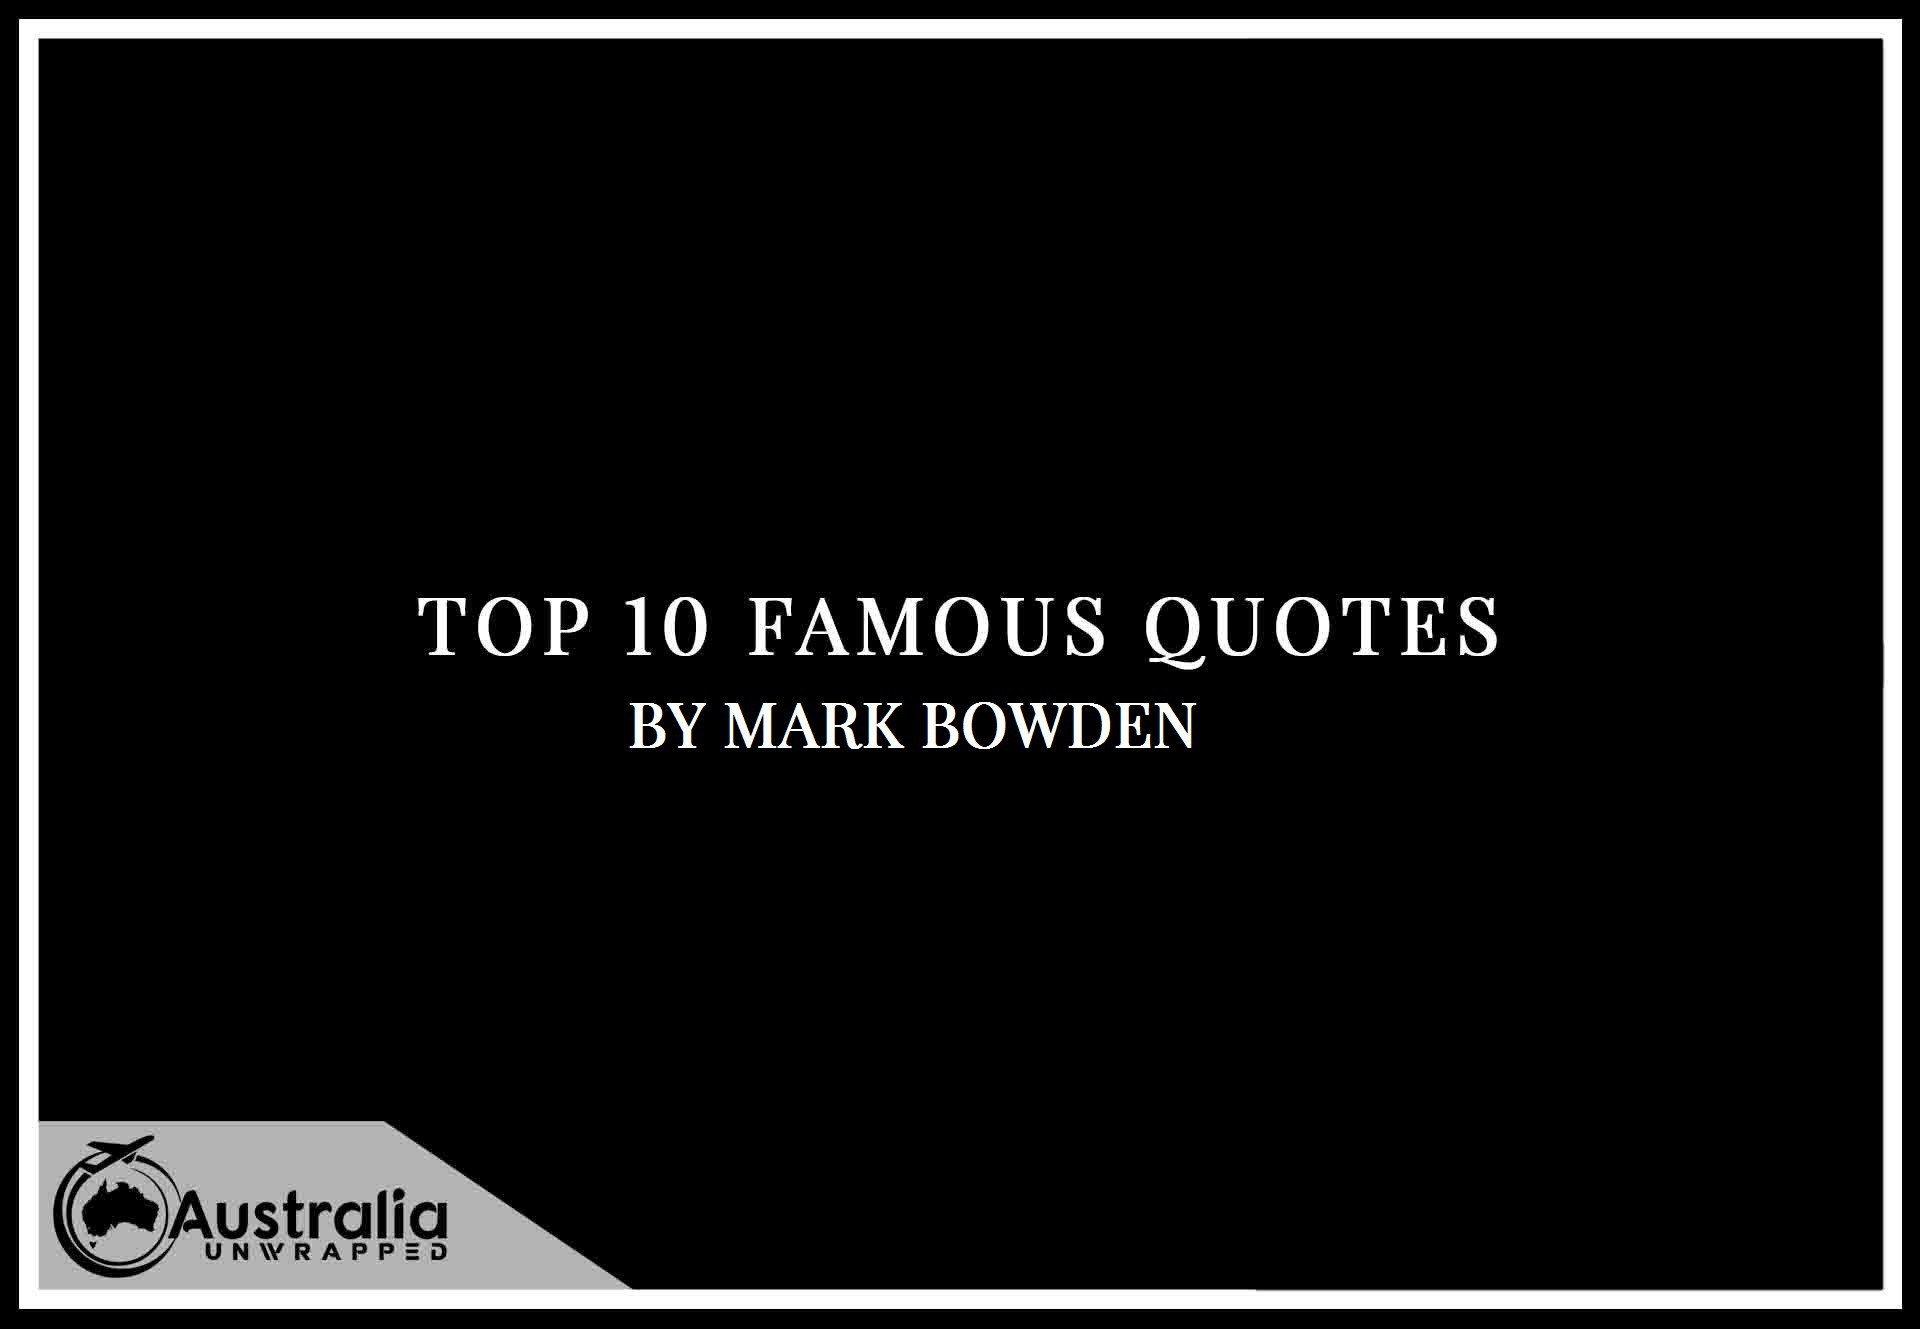 Mark Bowden's Top 10 Popular and Famous Quotes